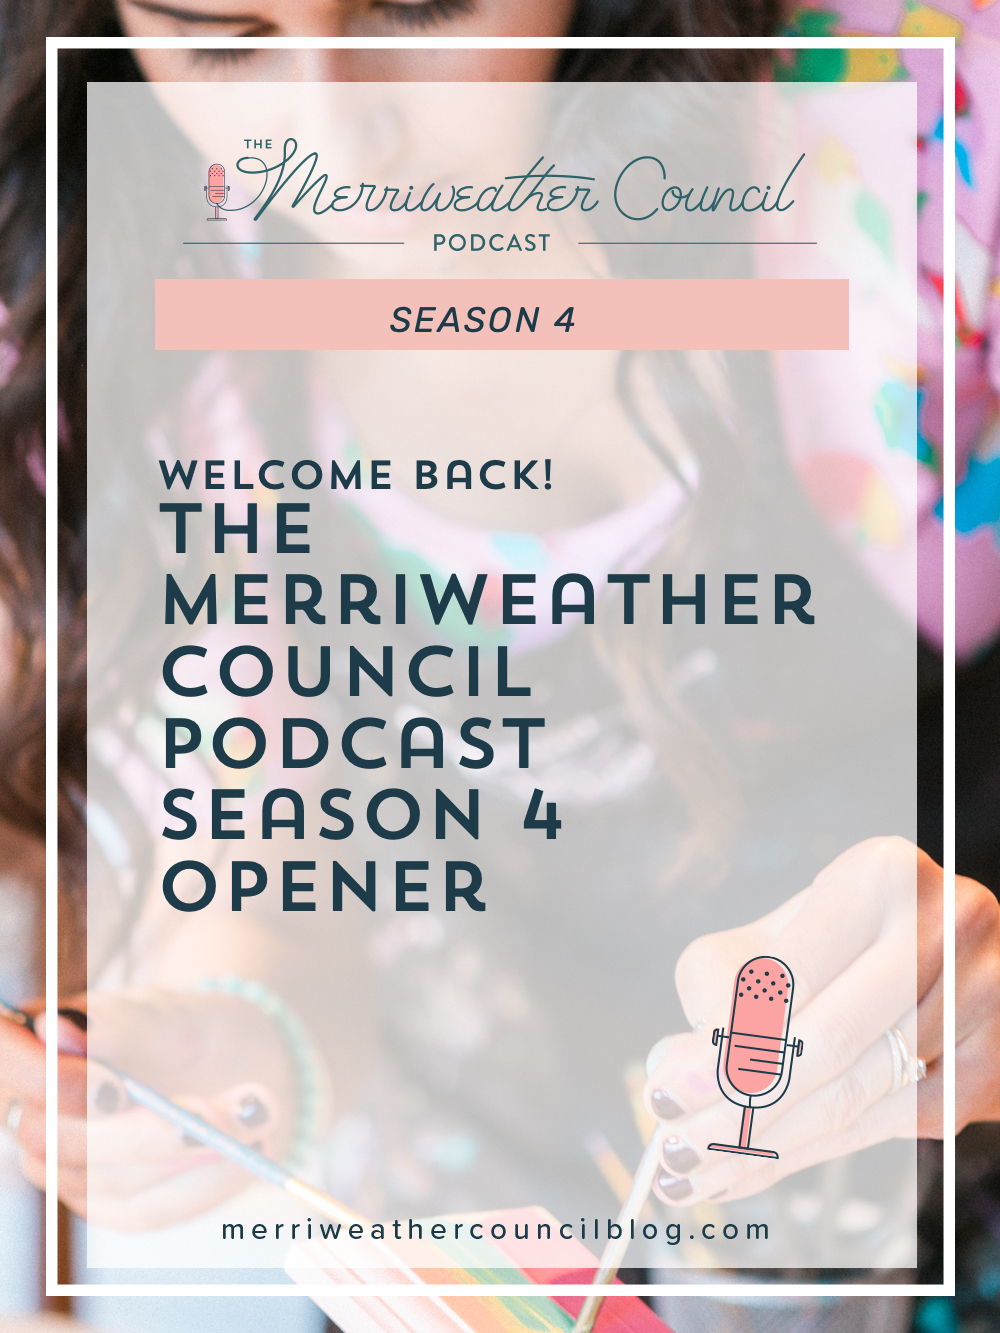 On today's episode of the Merriweather Council Podcast; a brief intro to me & the podcast, what to expect in season 4 and what I'm most excited about.